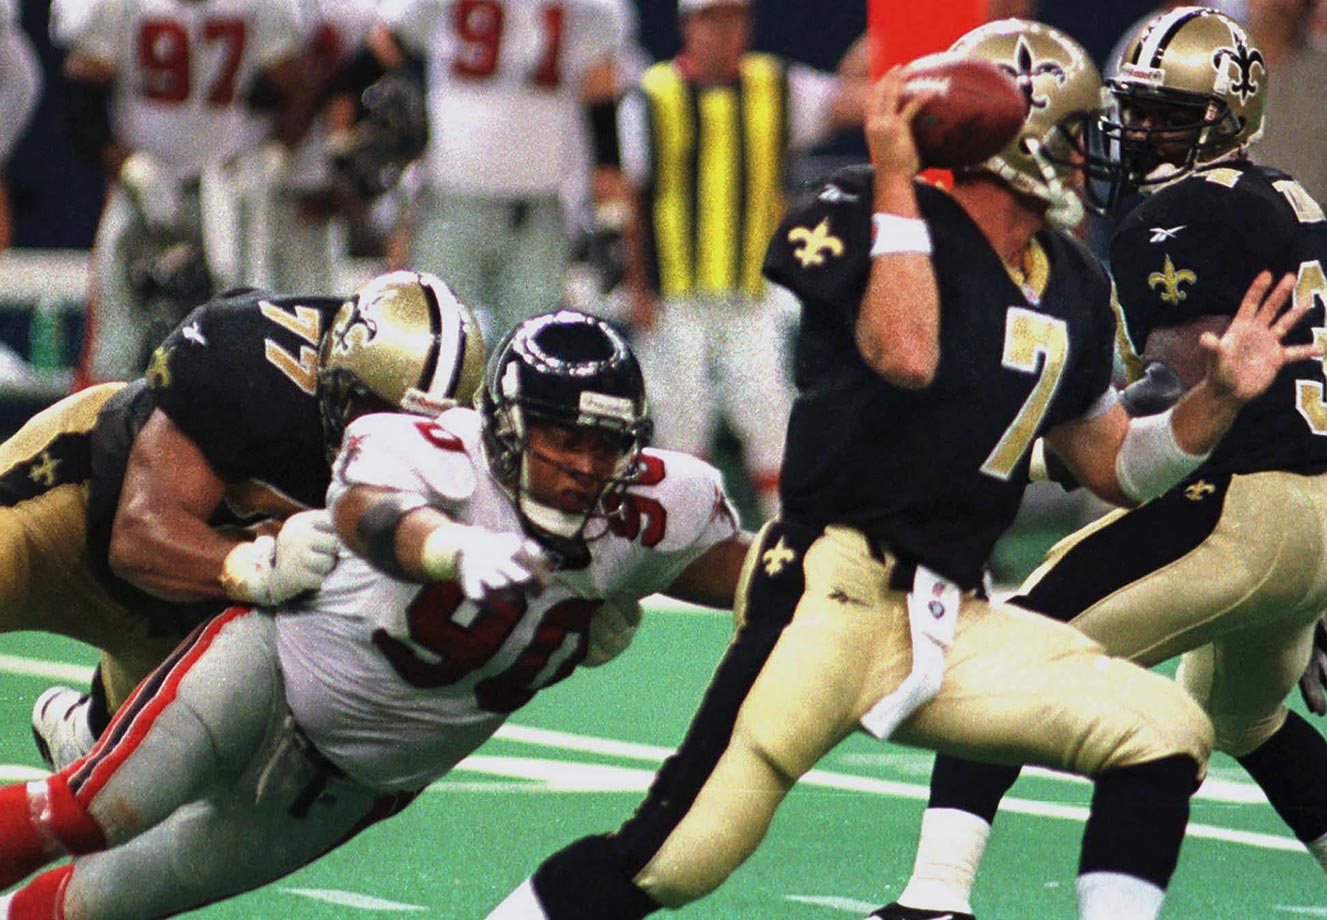 October 12, 1997 — Atlanta Falcons vs. New Orleans Saints